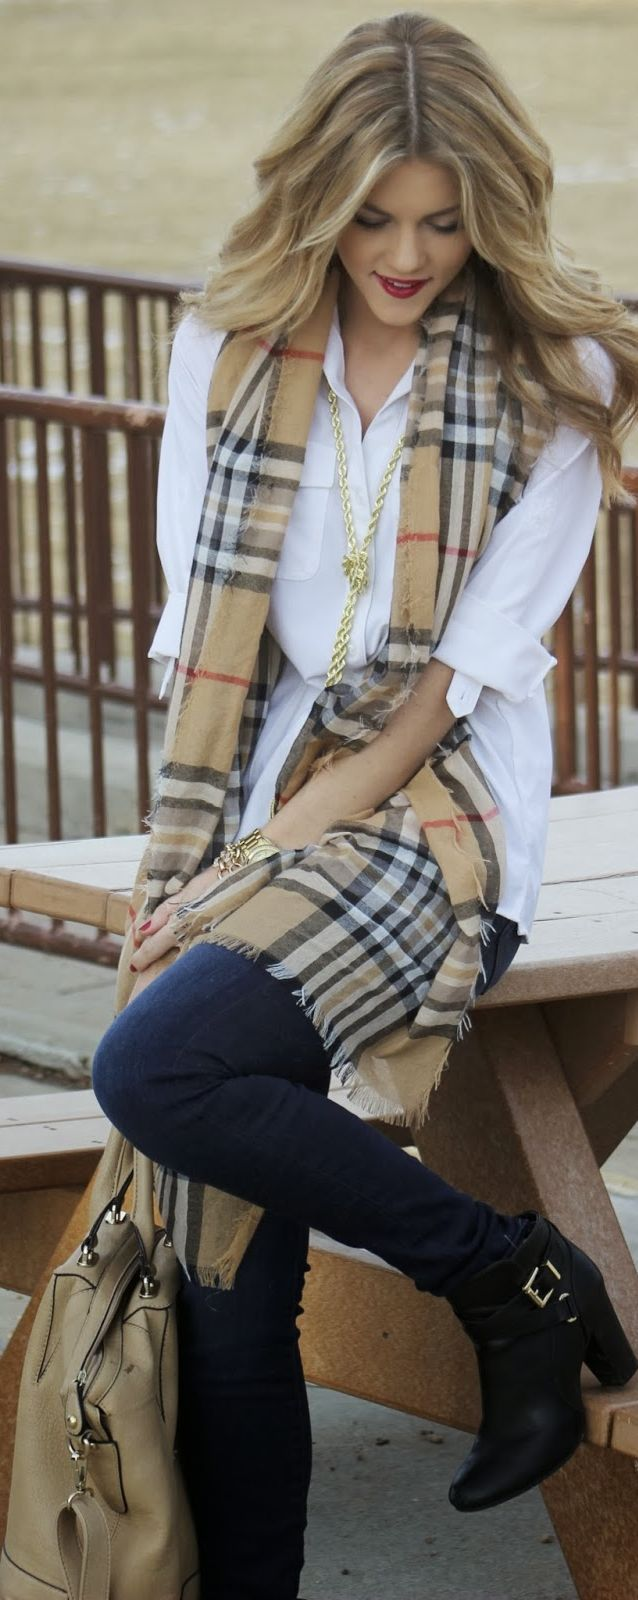 There is nothing more classic than a Burberry Scarf for Fall. Super chic way to dress up an outfit.